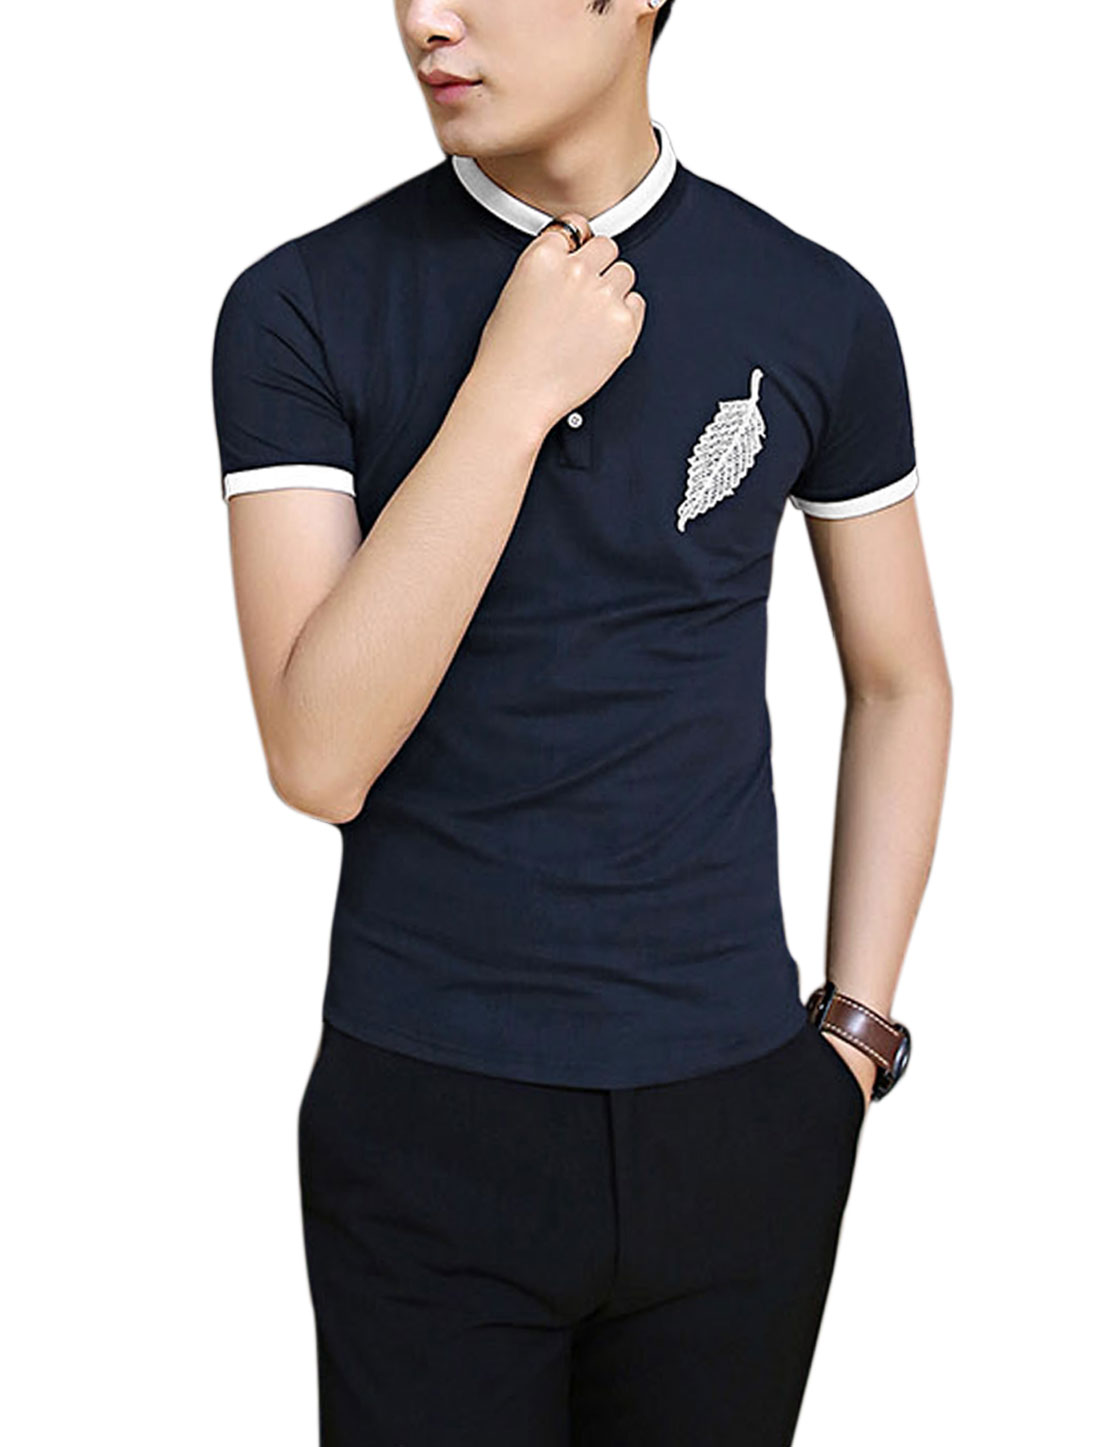 Men 1/4 Placket Leaf Embroidery Patch Chic Polo Shirt Navy Blue M